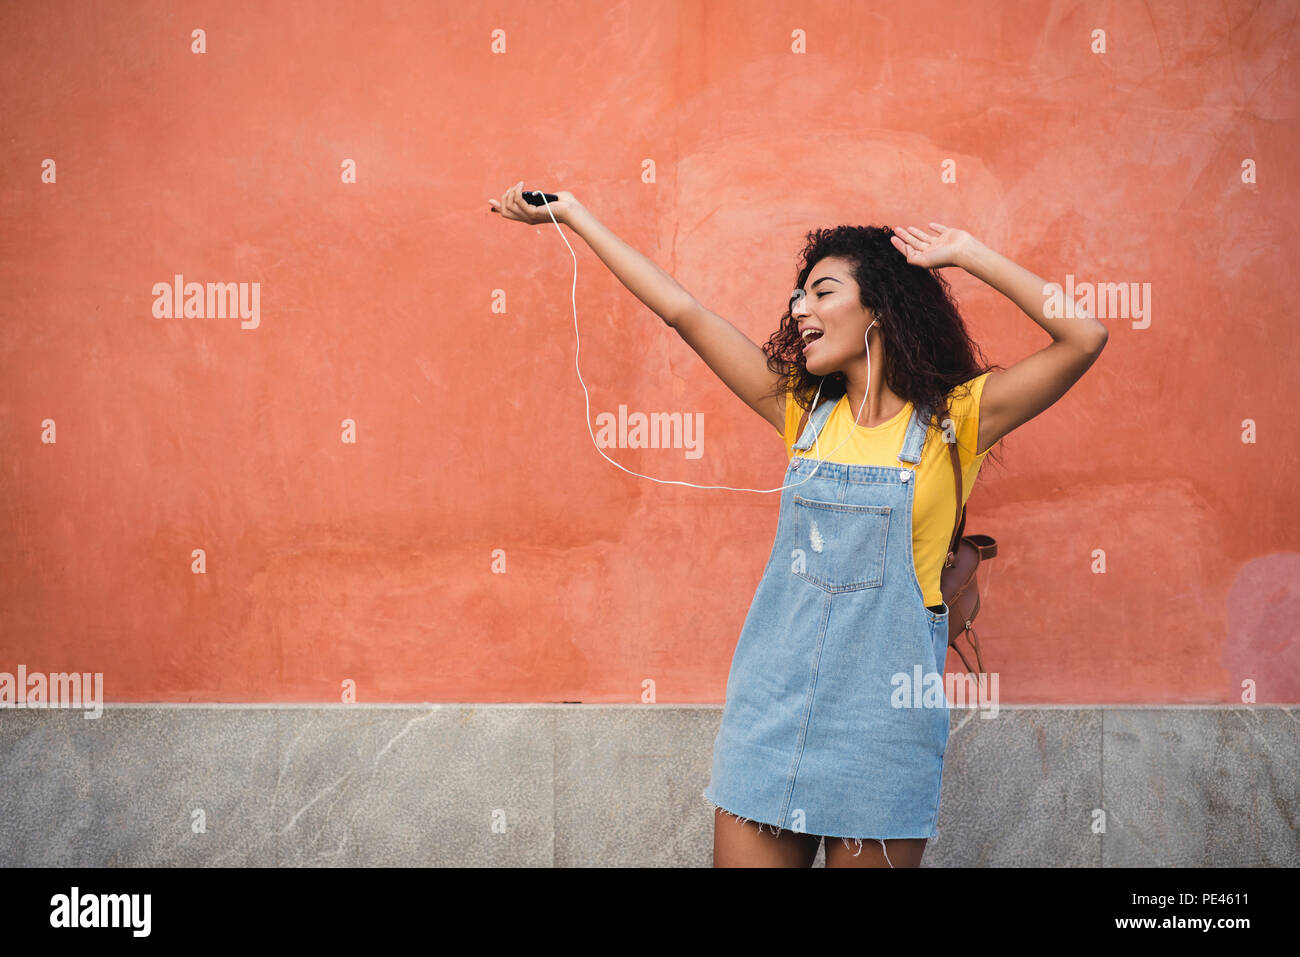 Young Black Woman With Curly Hair Having Fun In The Urban